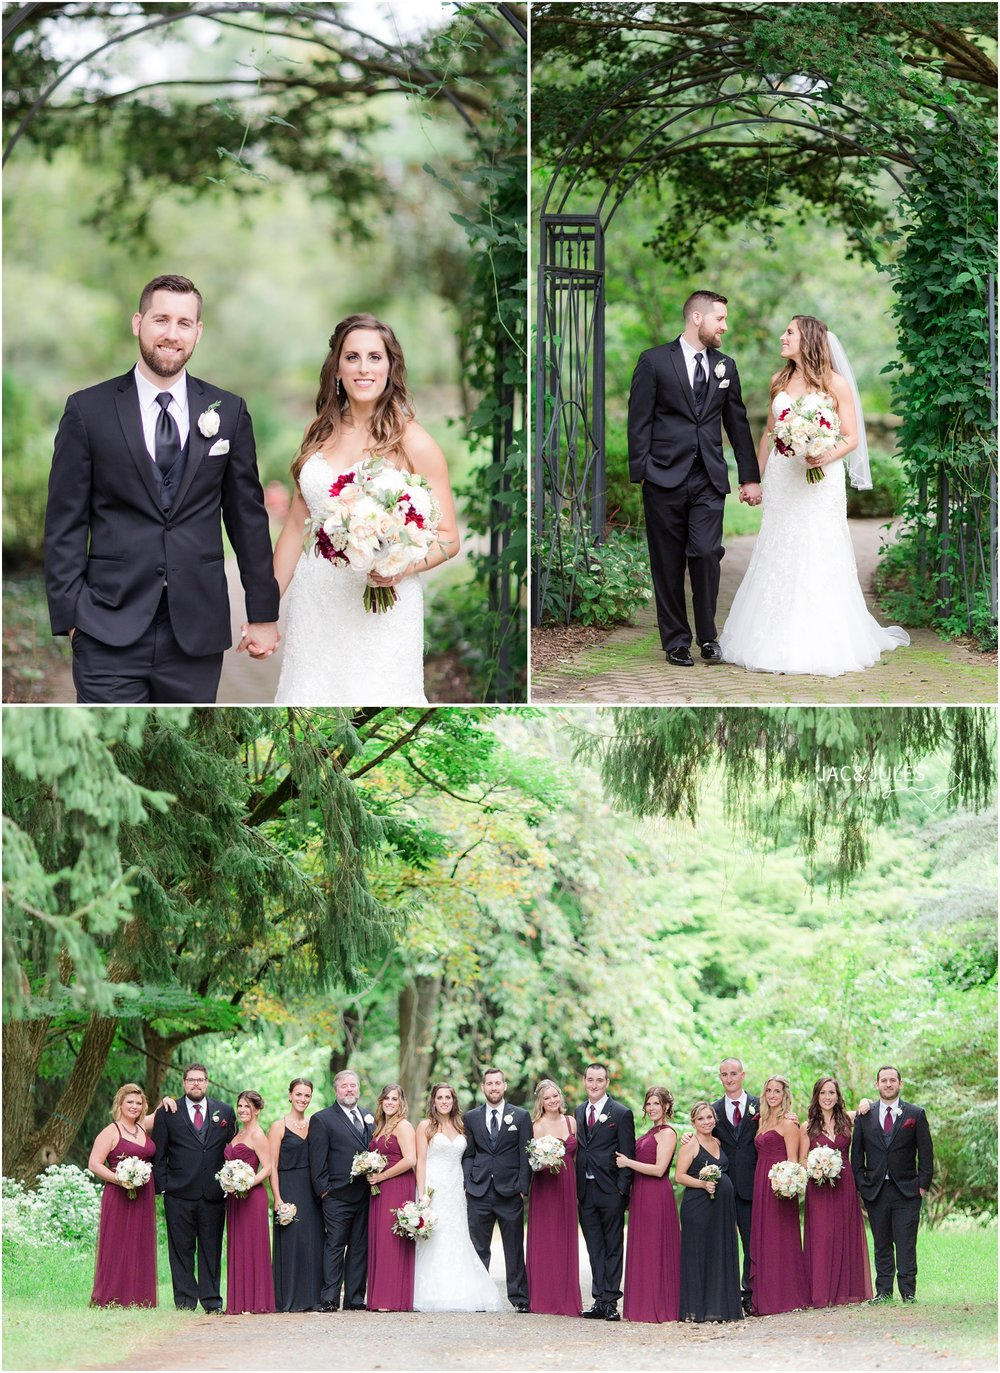 Fun Bridal Party photos at Cross Estate Gardens in Bernardsville, NJ.